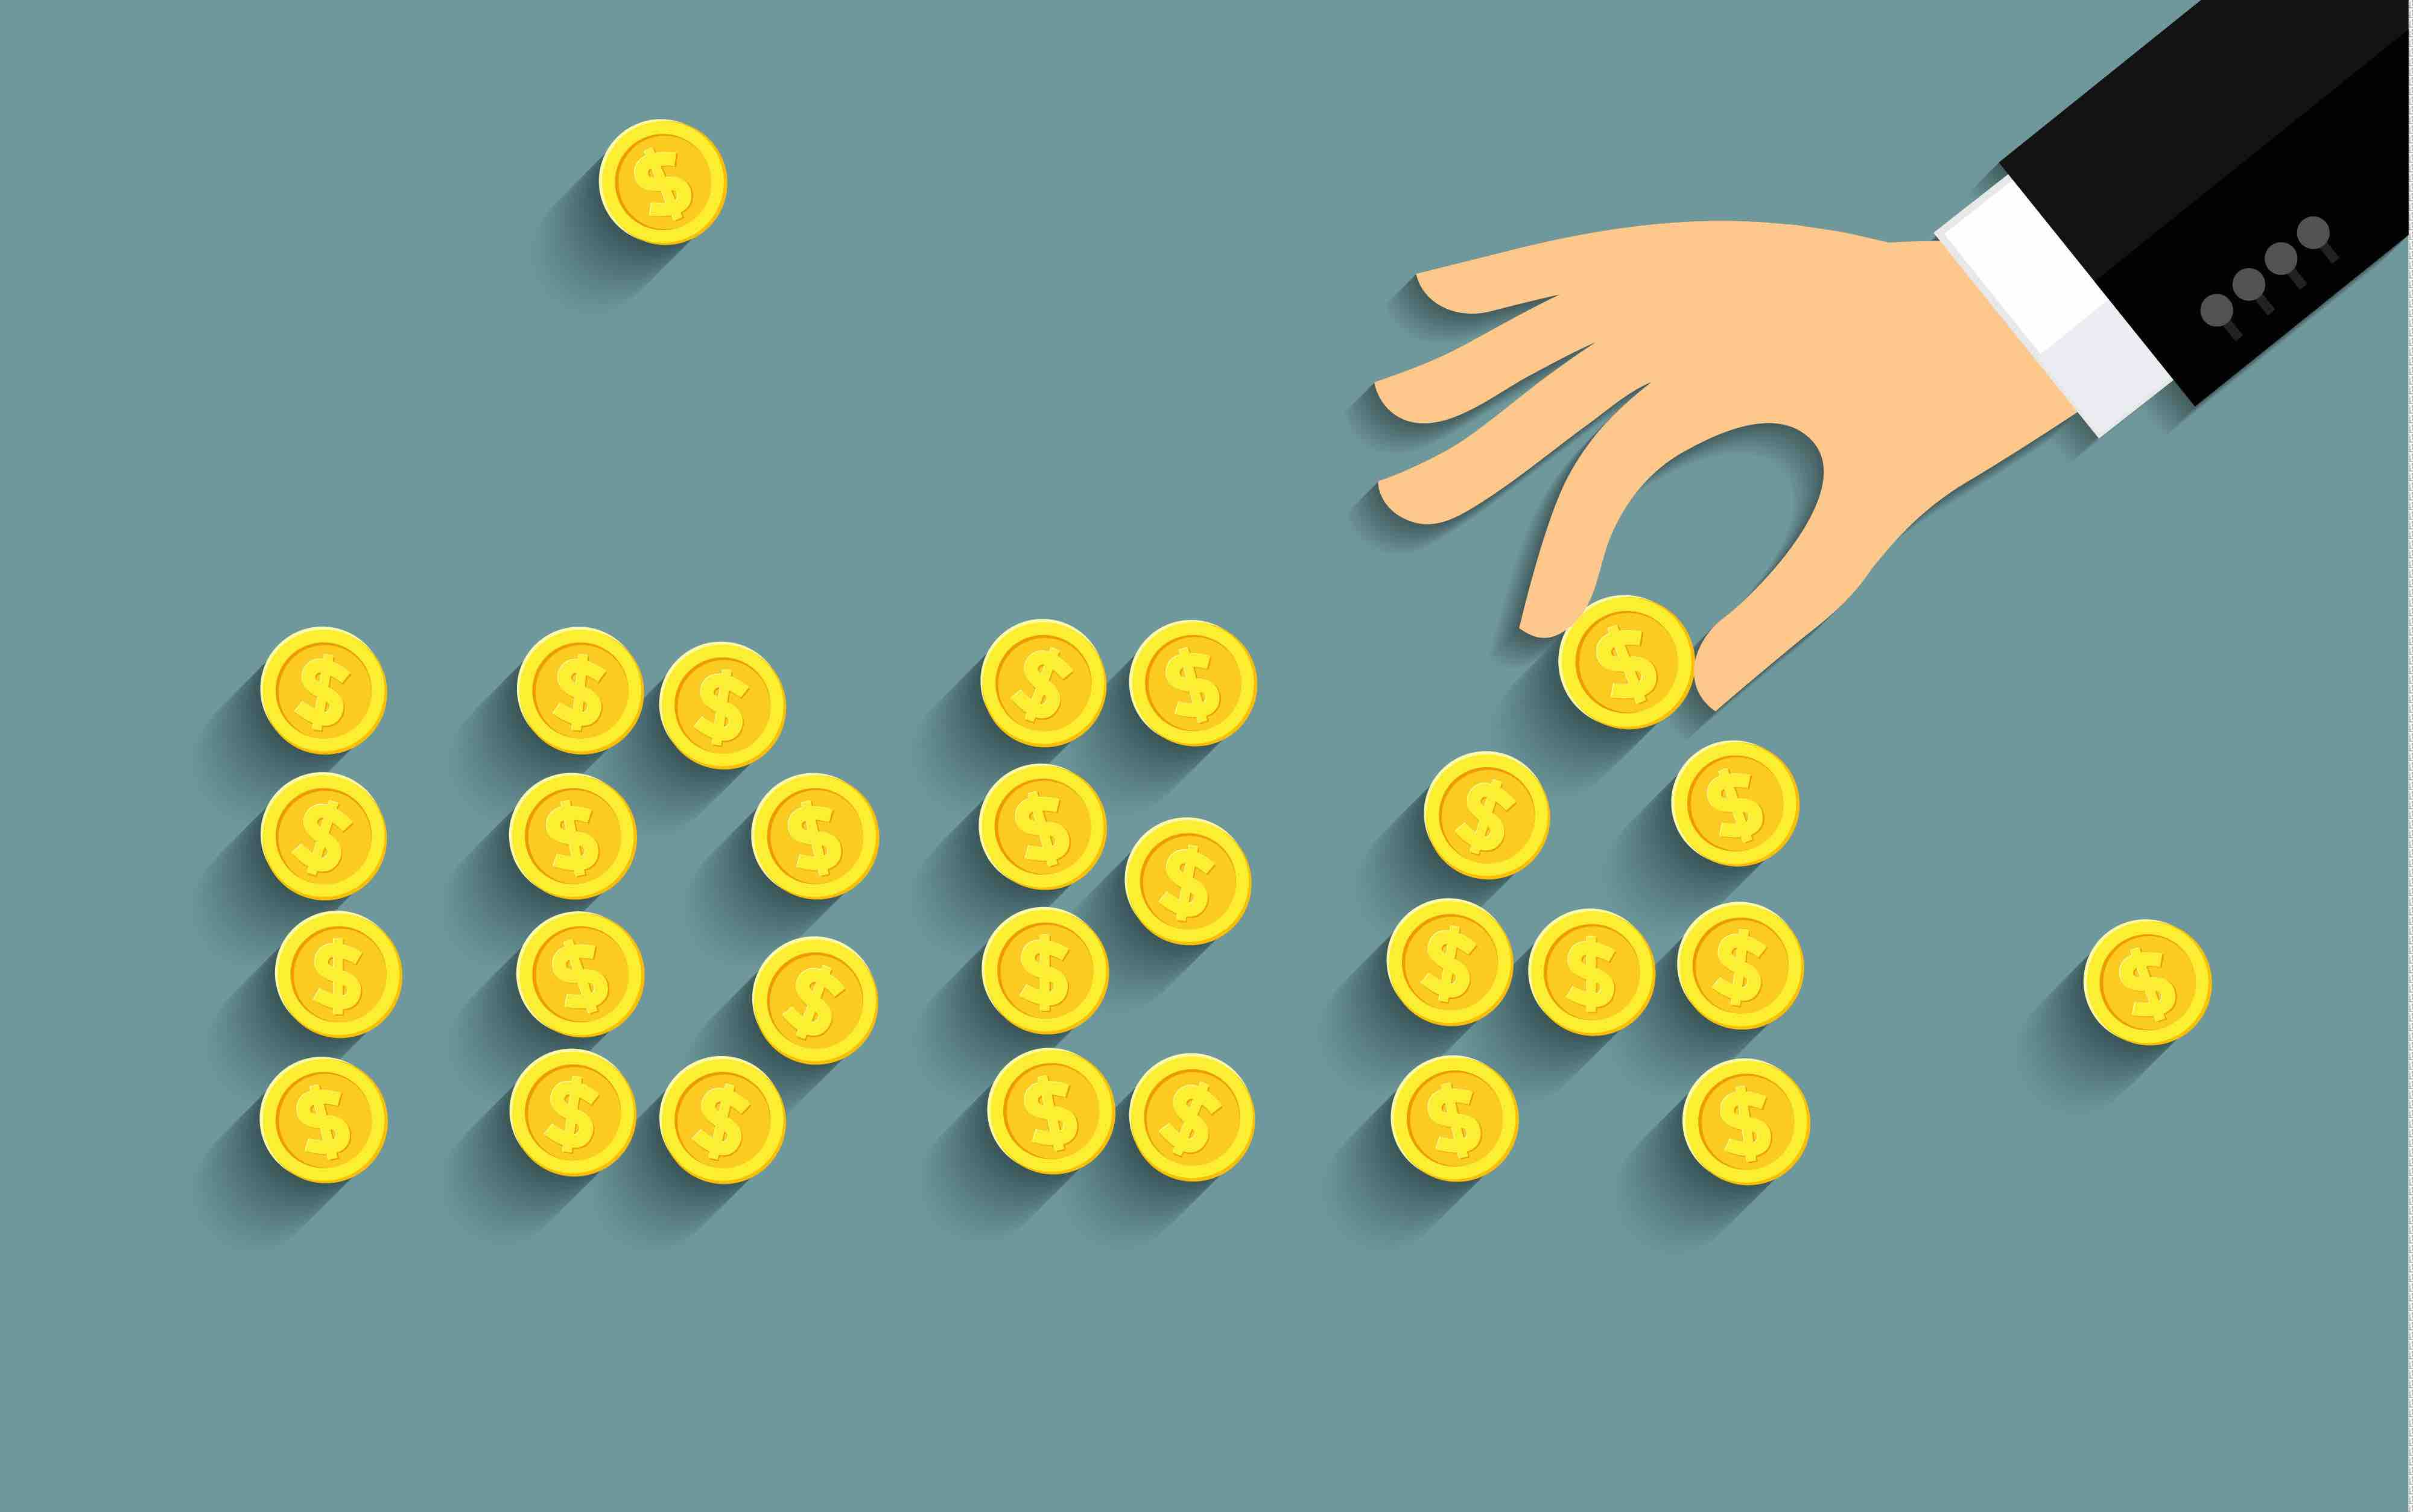 Has crowdfunding become a global engine of job creation by seed funding innovation?